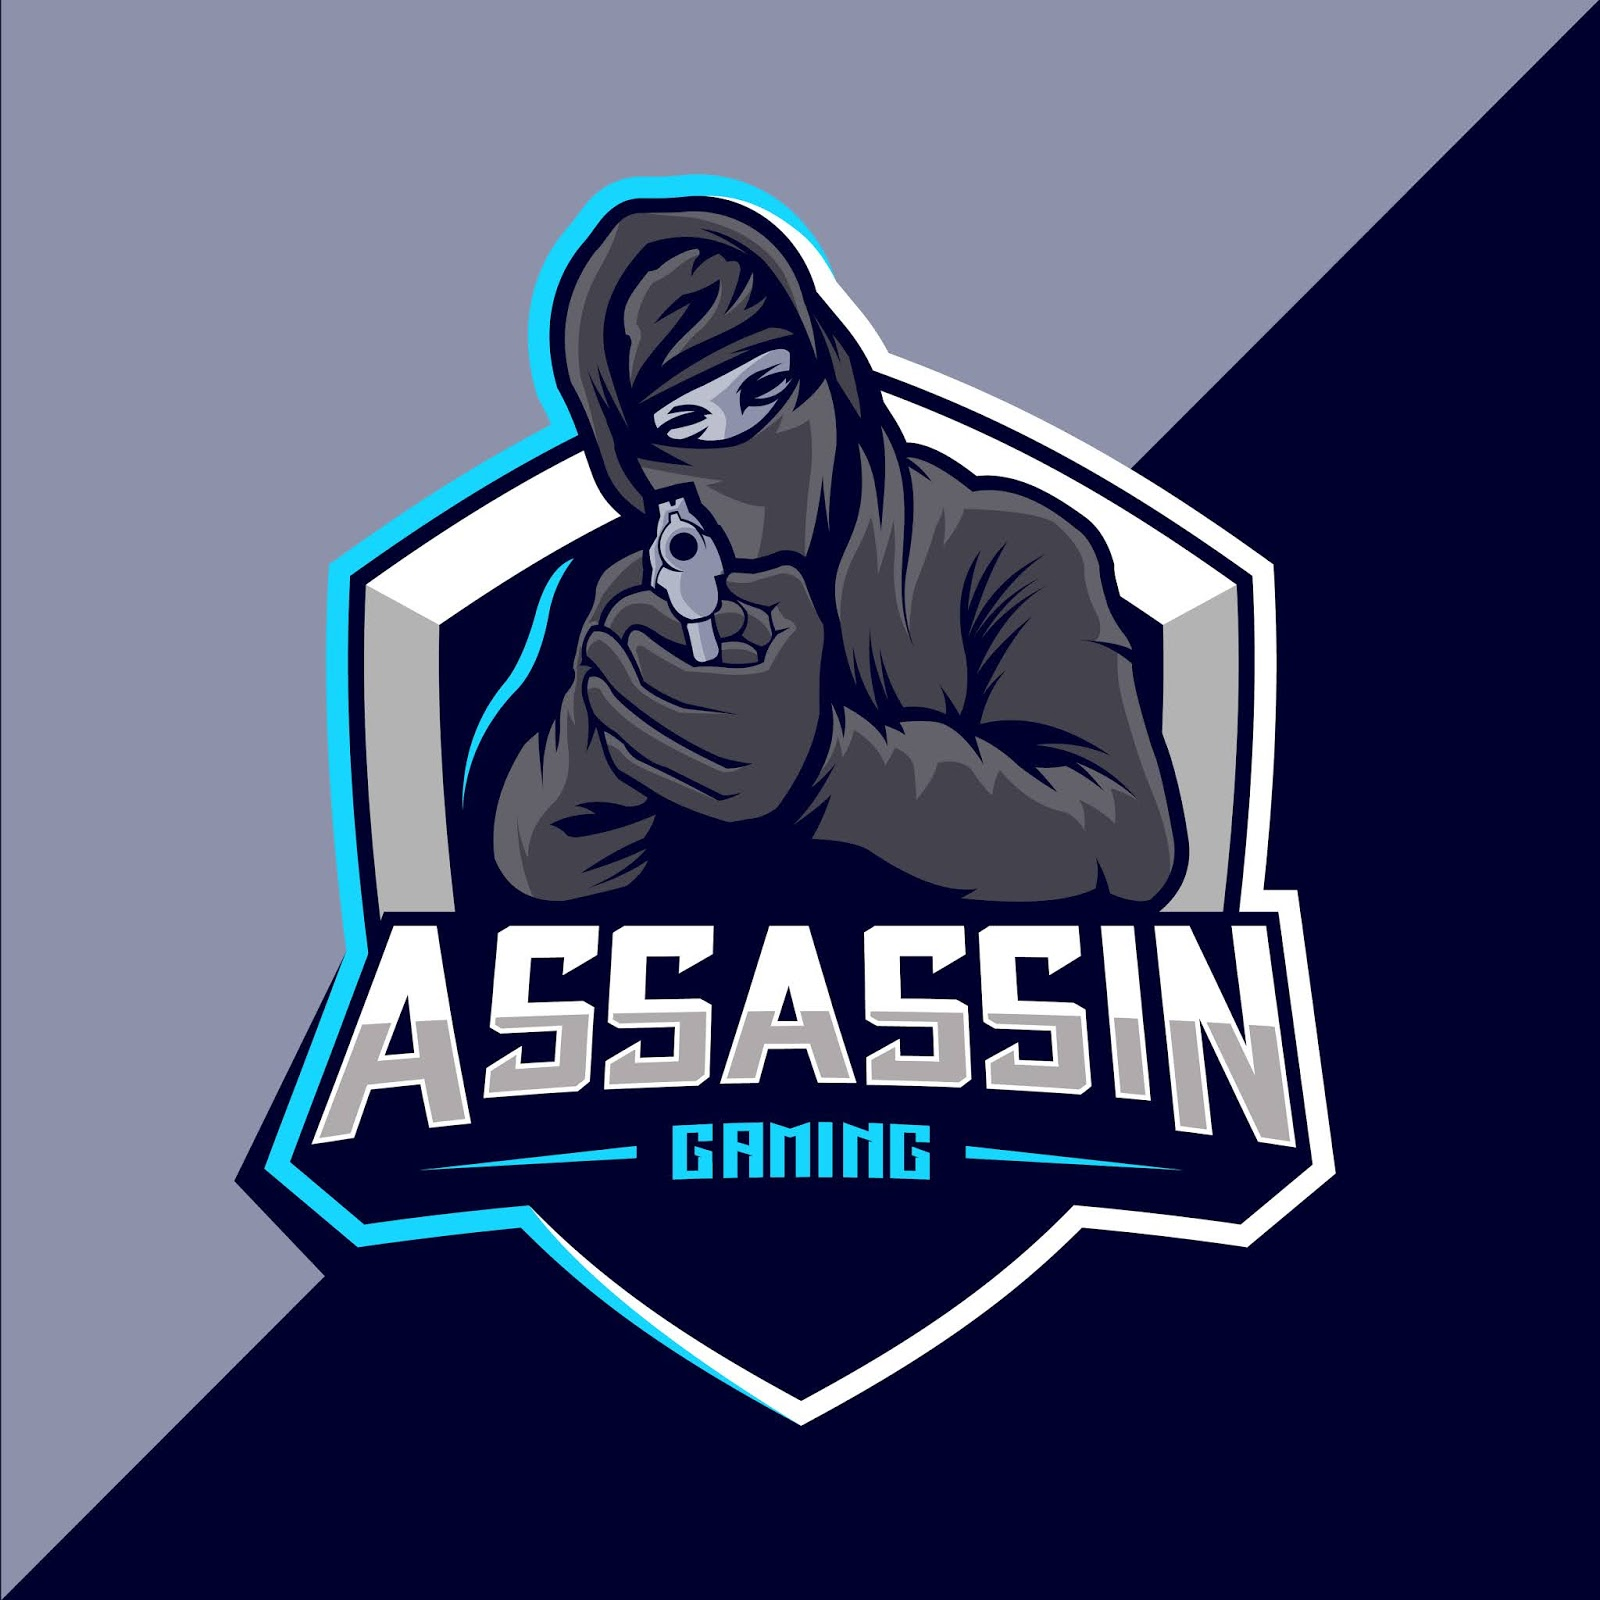 Assassin With Gun Mascot Esport Logo Design Free Download Vector CDR, AI, EPS and PNG Formats